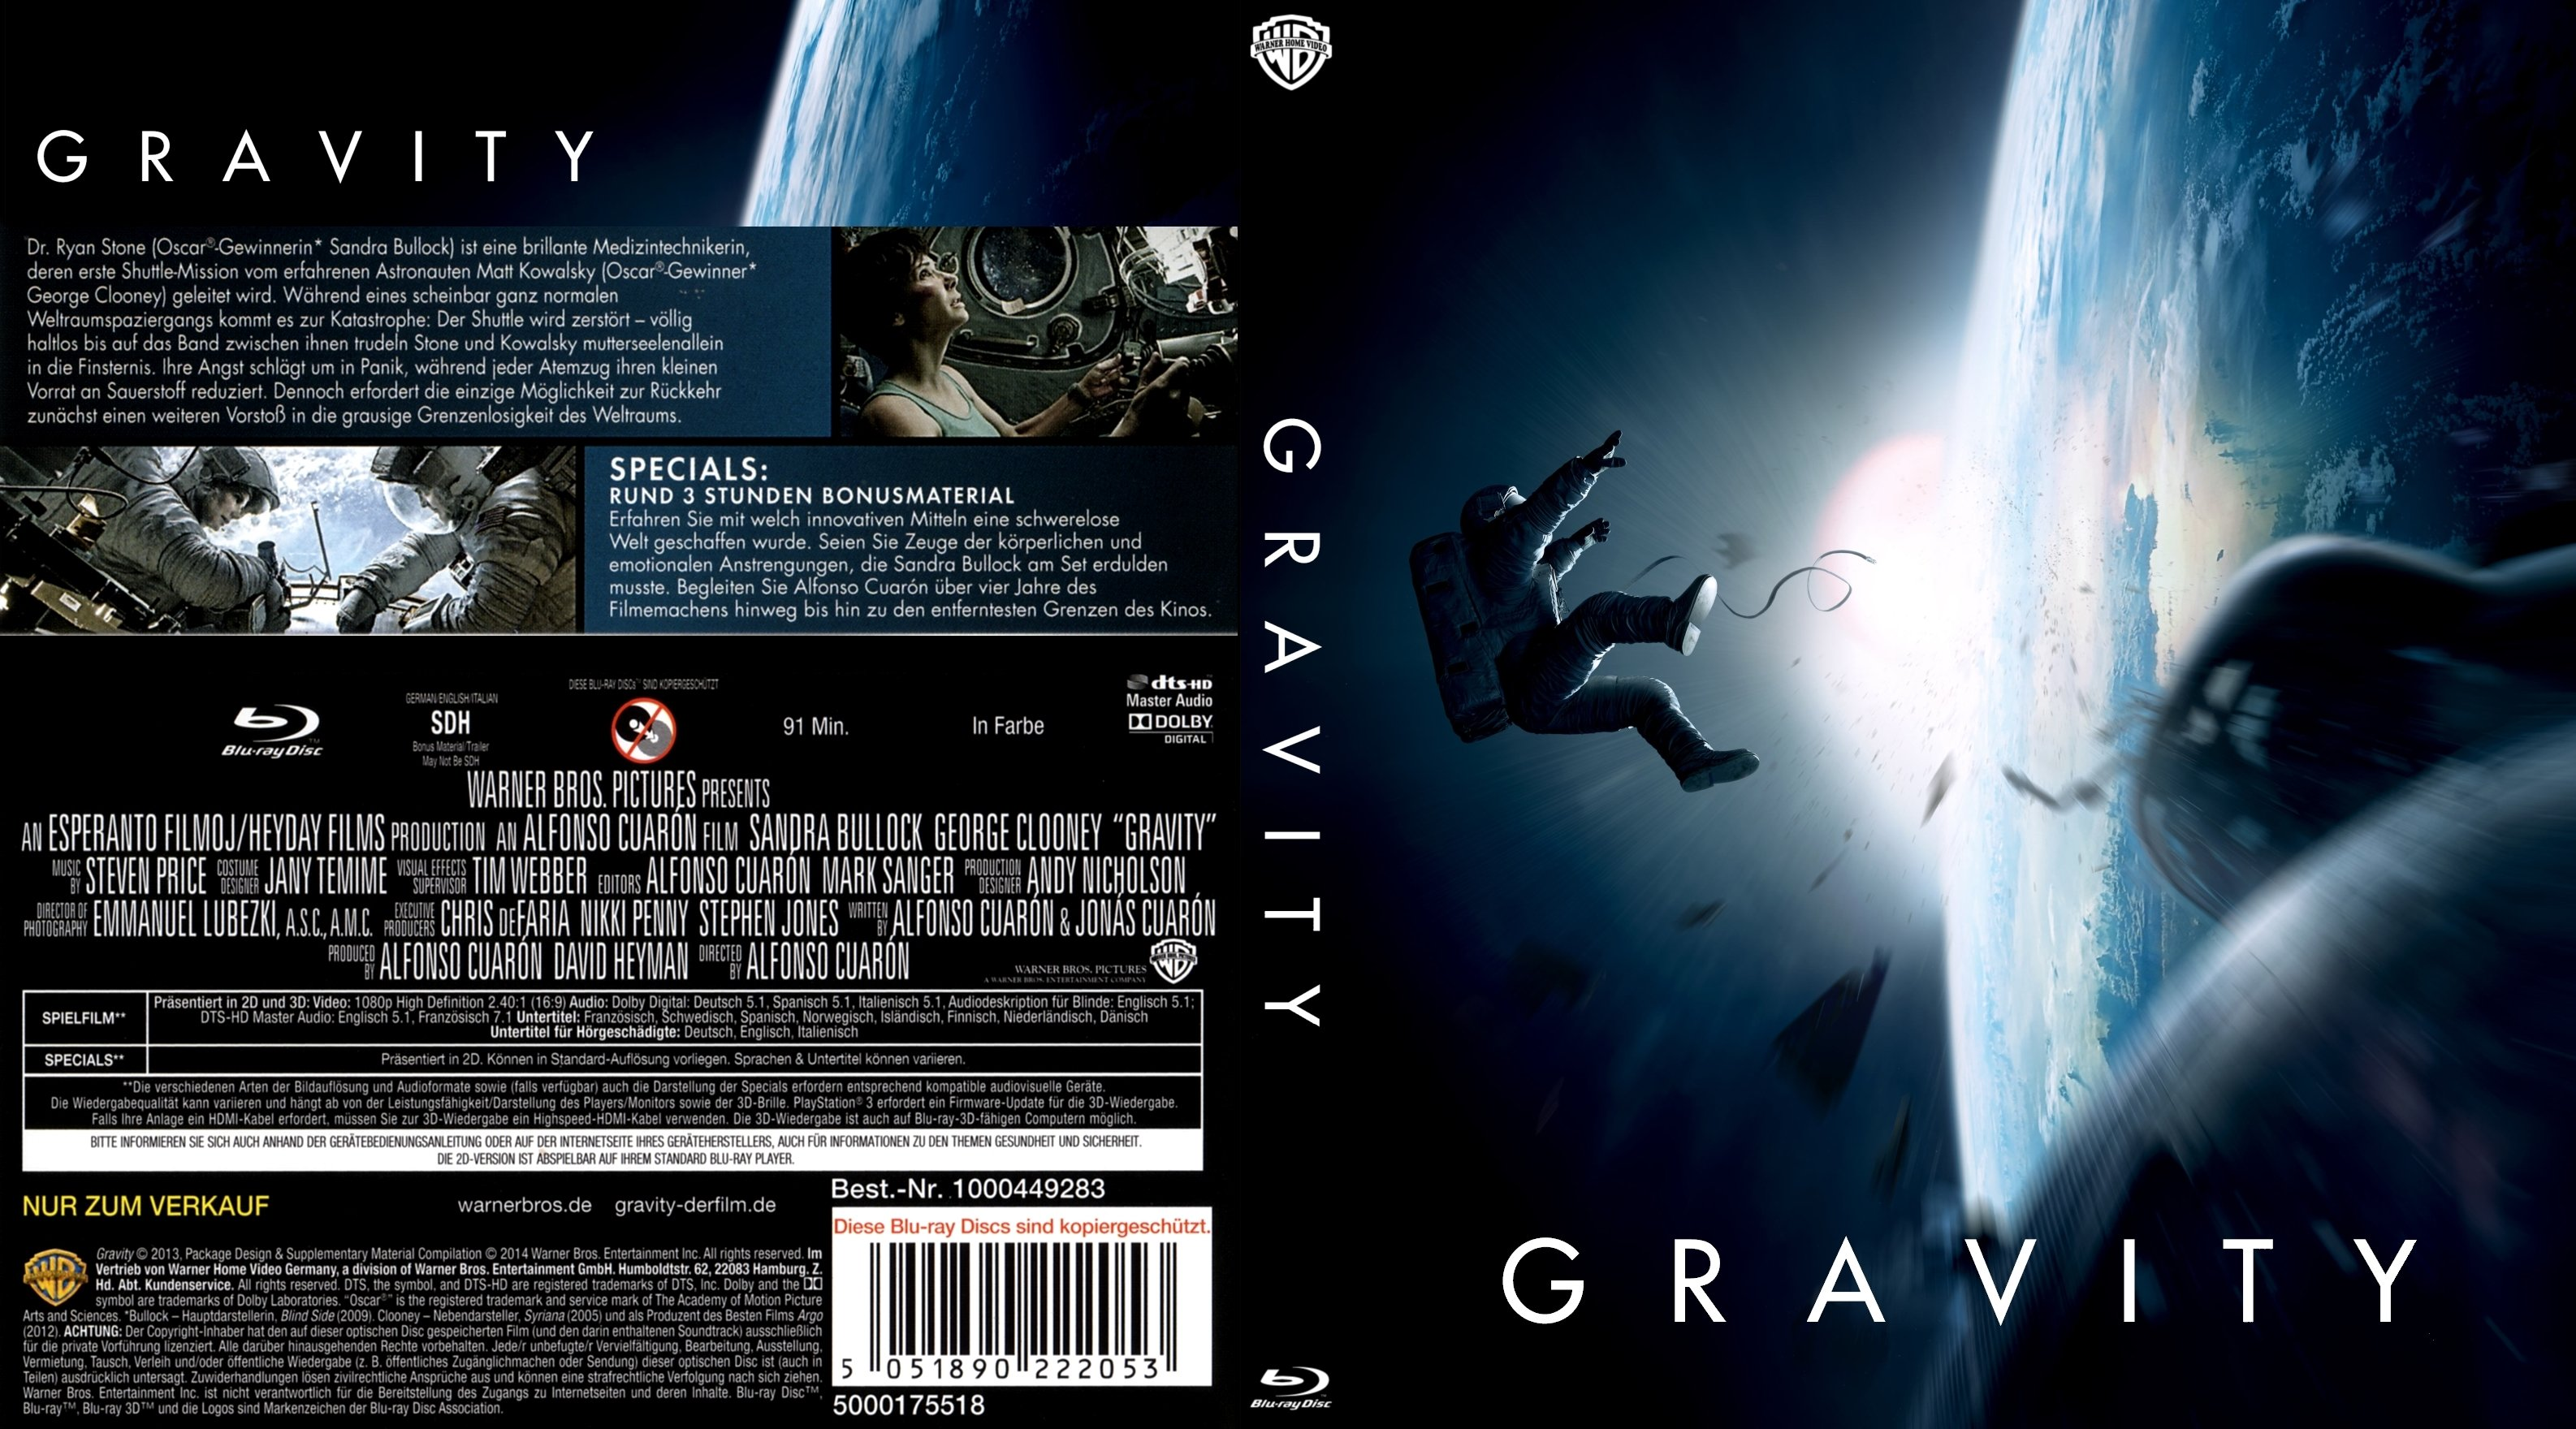 gravity german dvd covers